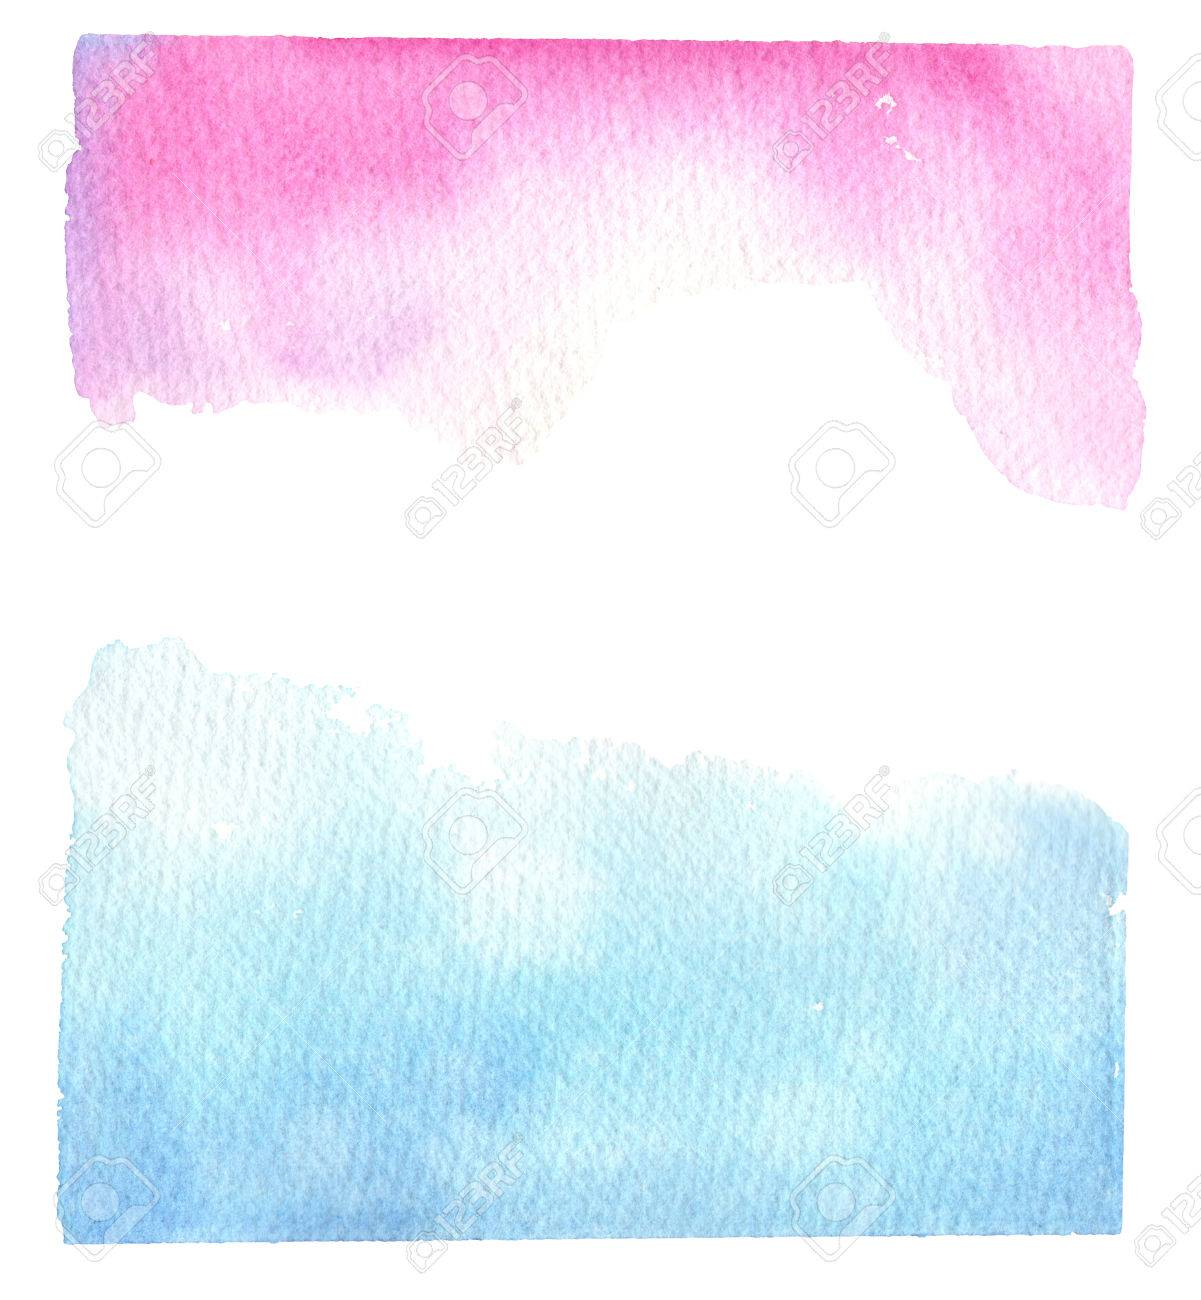 Fullsize Of Blue And Pink Background